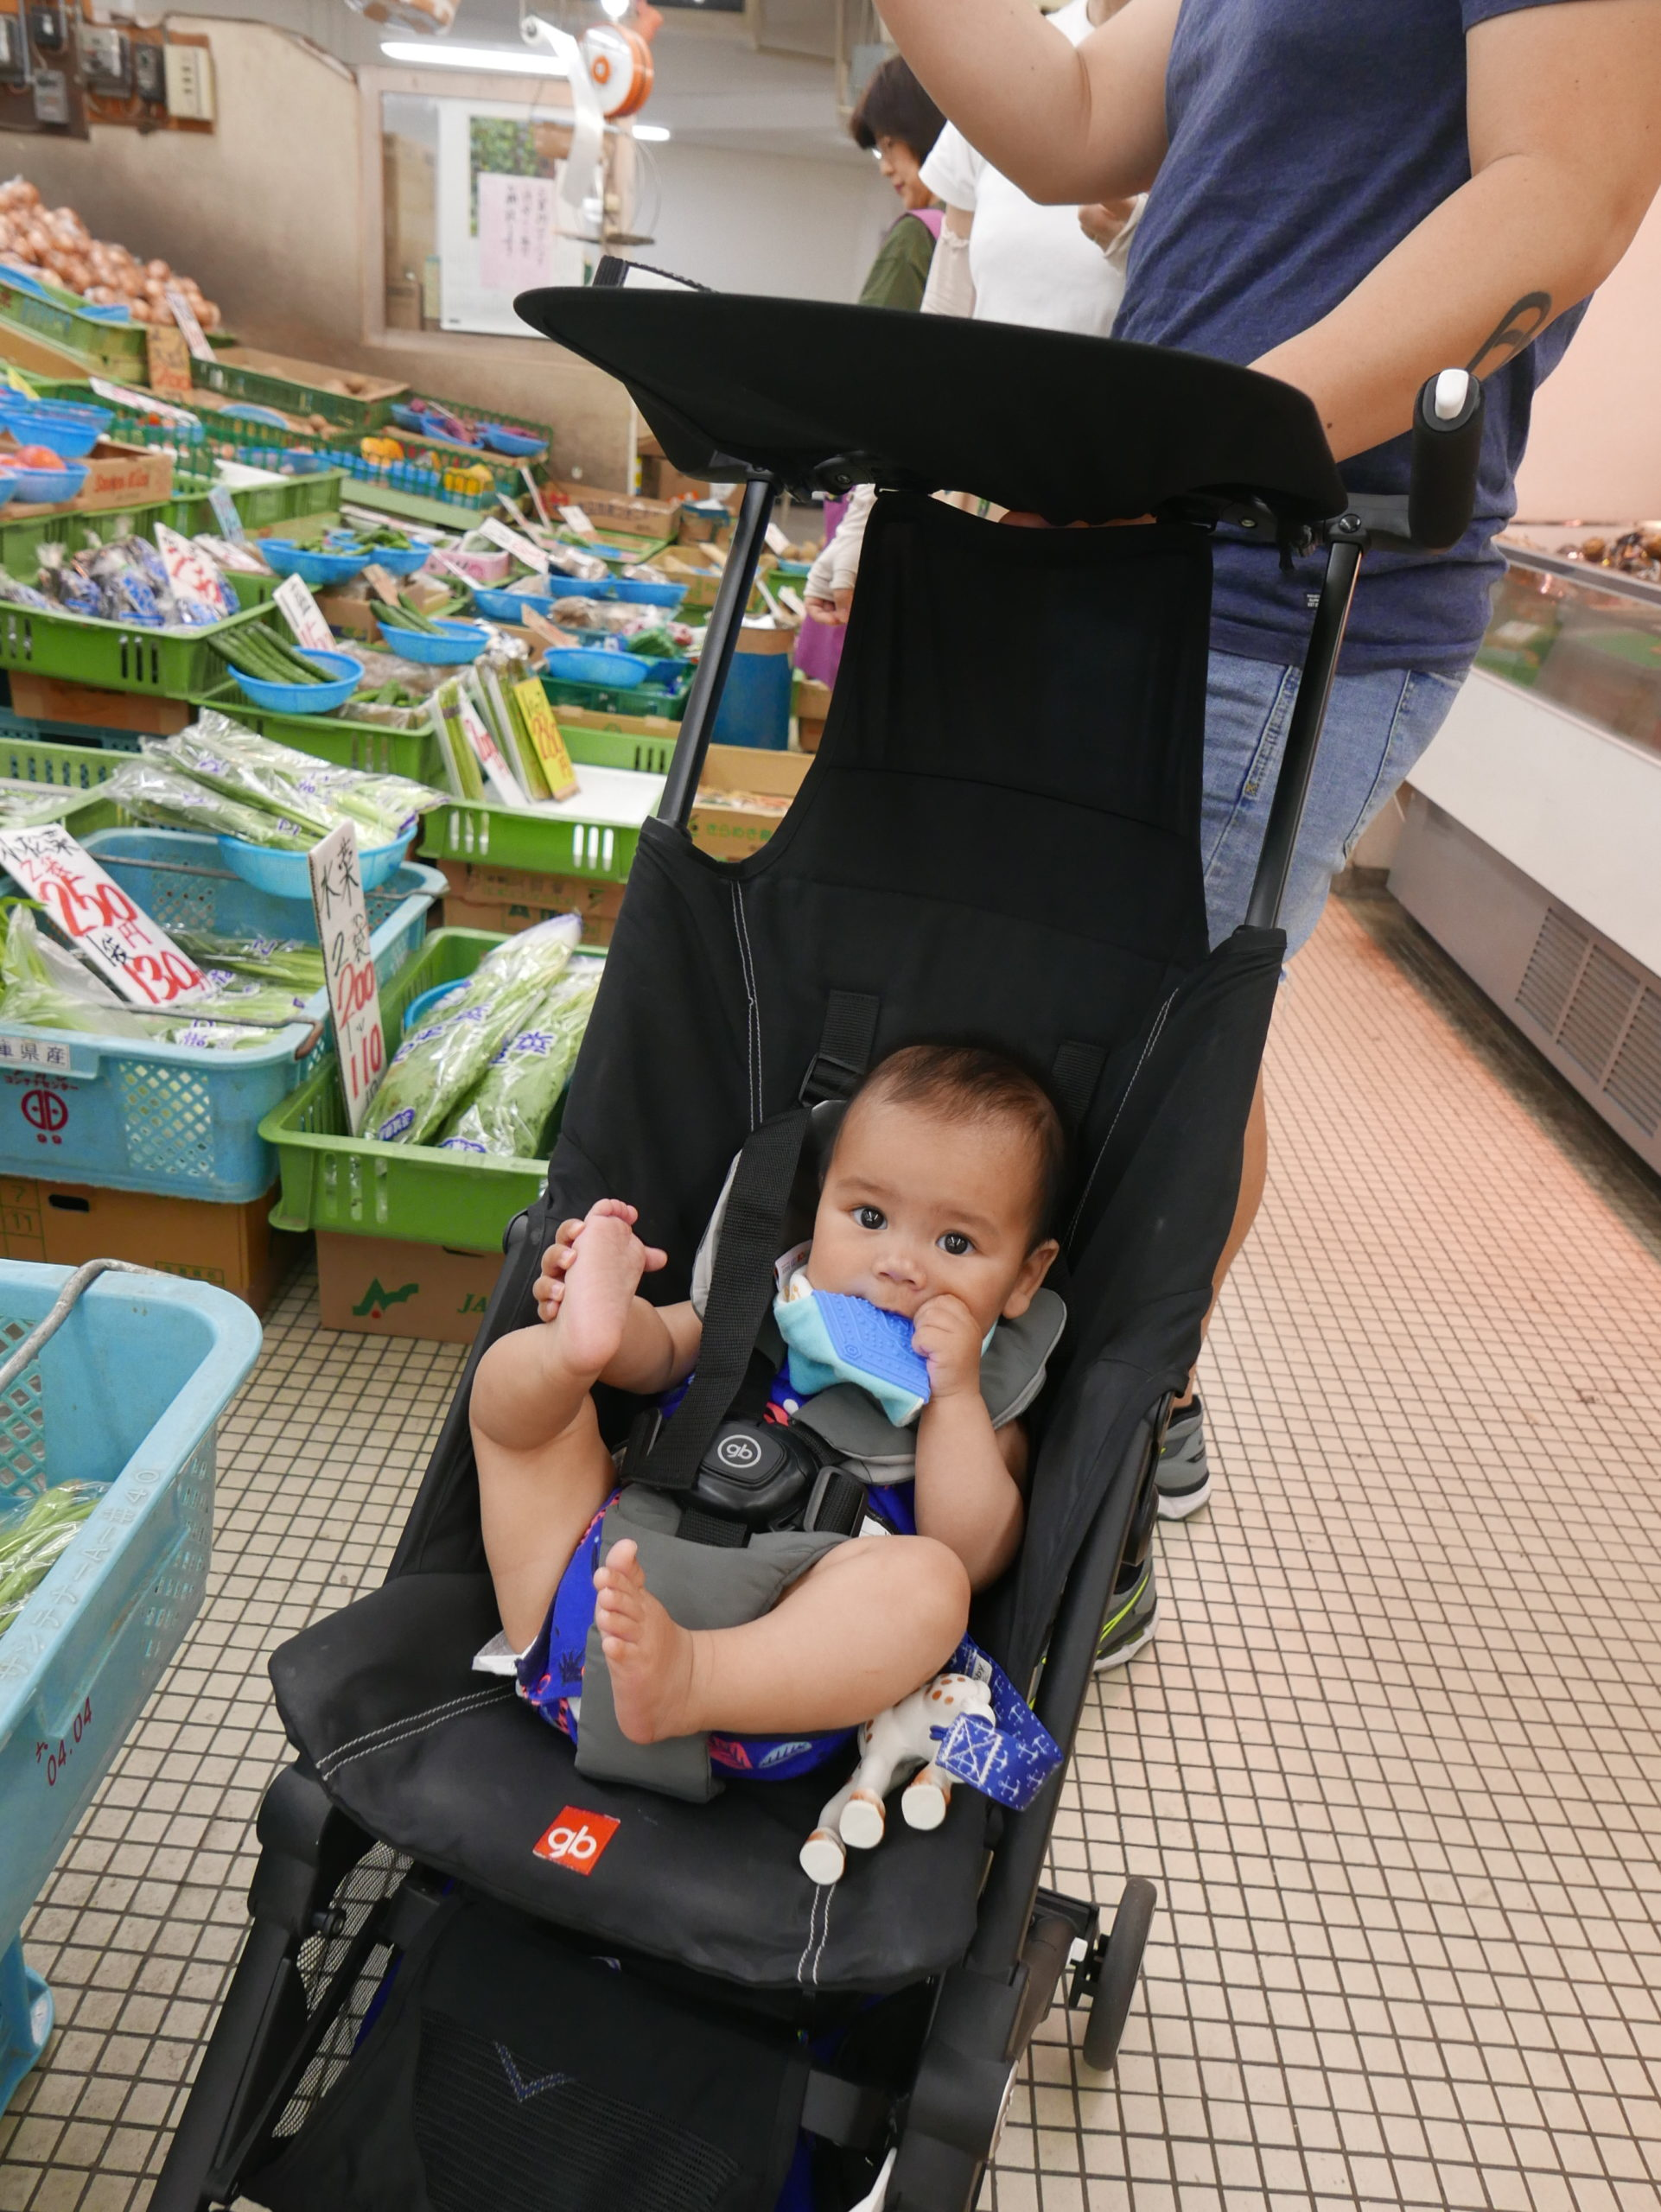 Baby sitting in a travel pram